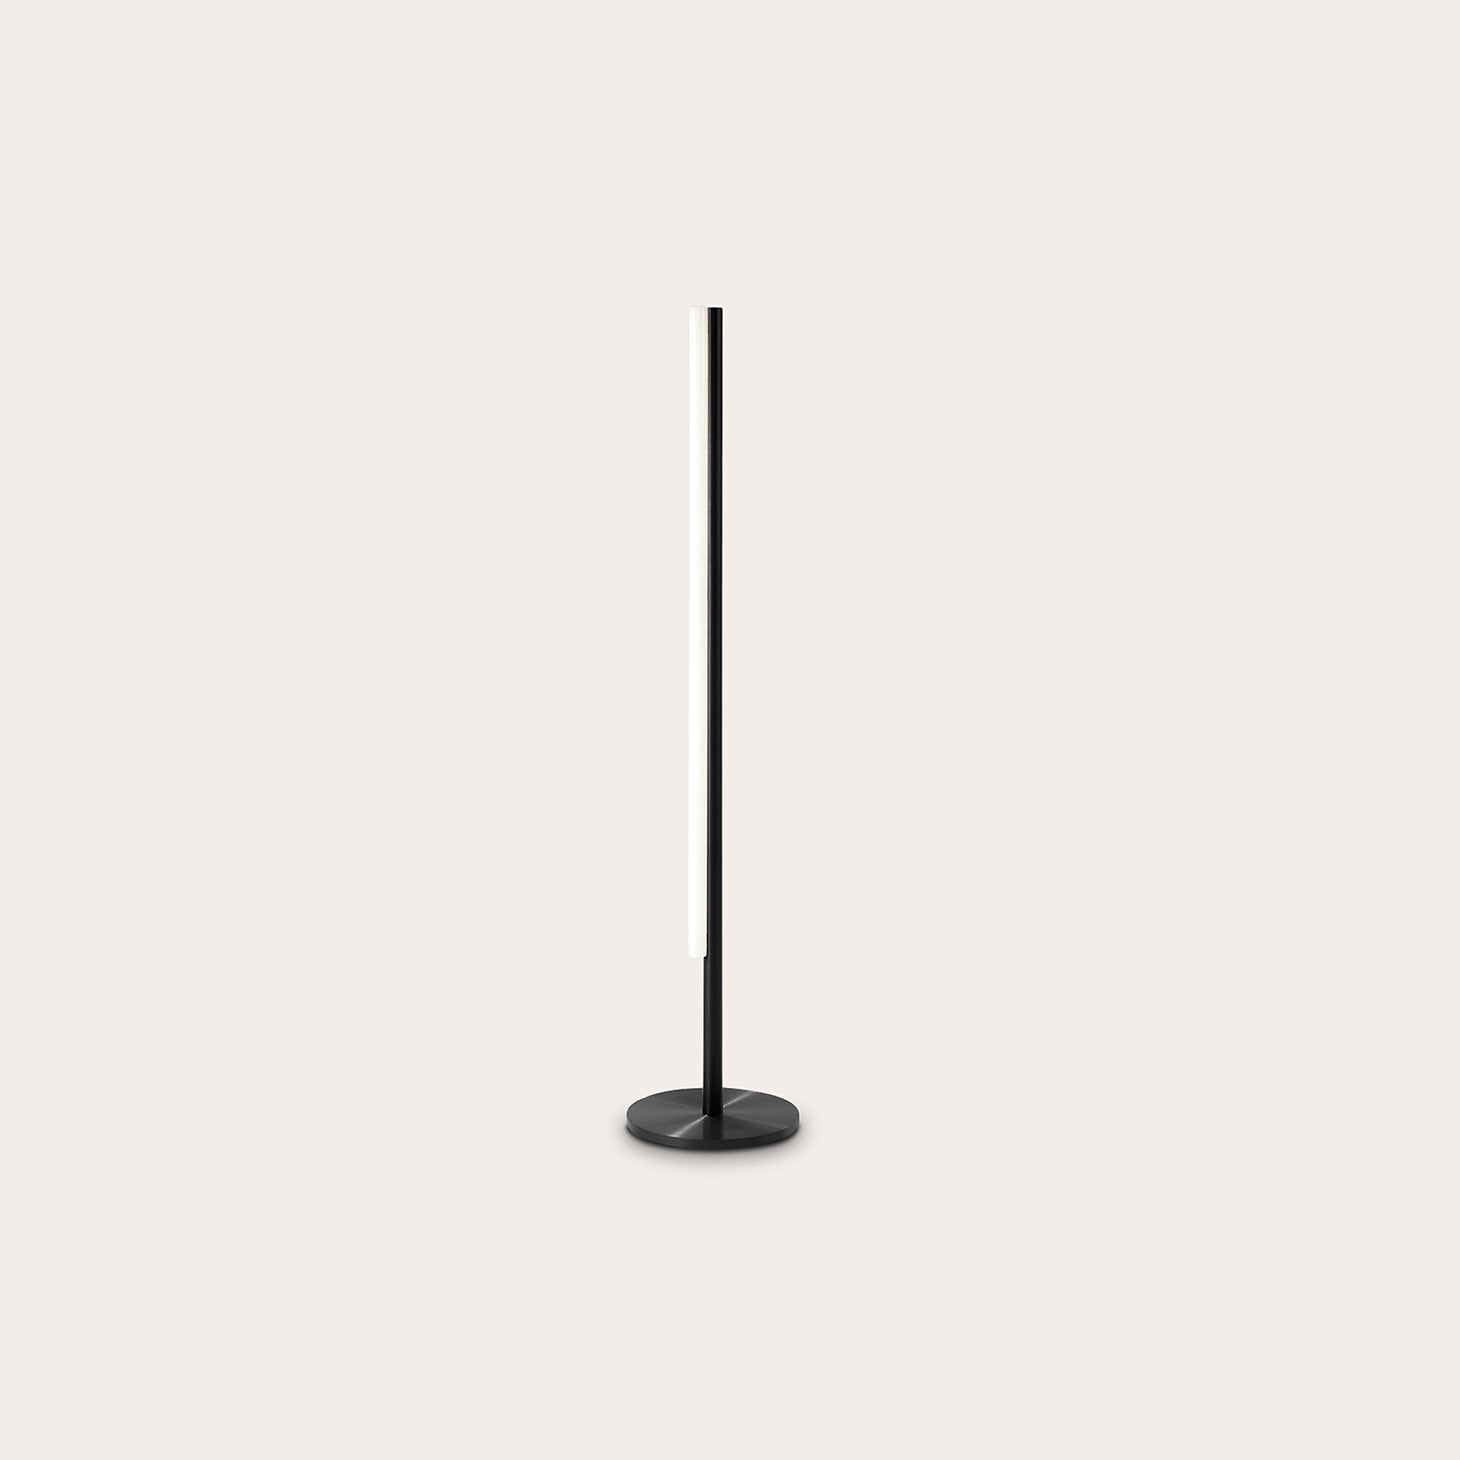 One Well Known Sequence 01 Lighting Michael Anastassiades Designer Furniture Sku: 717-100-10069